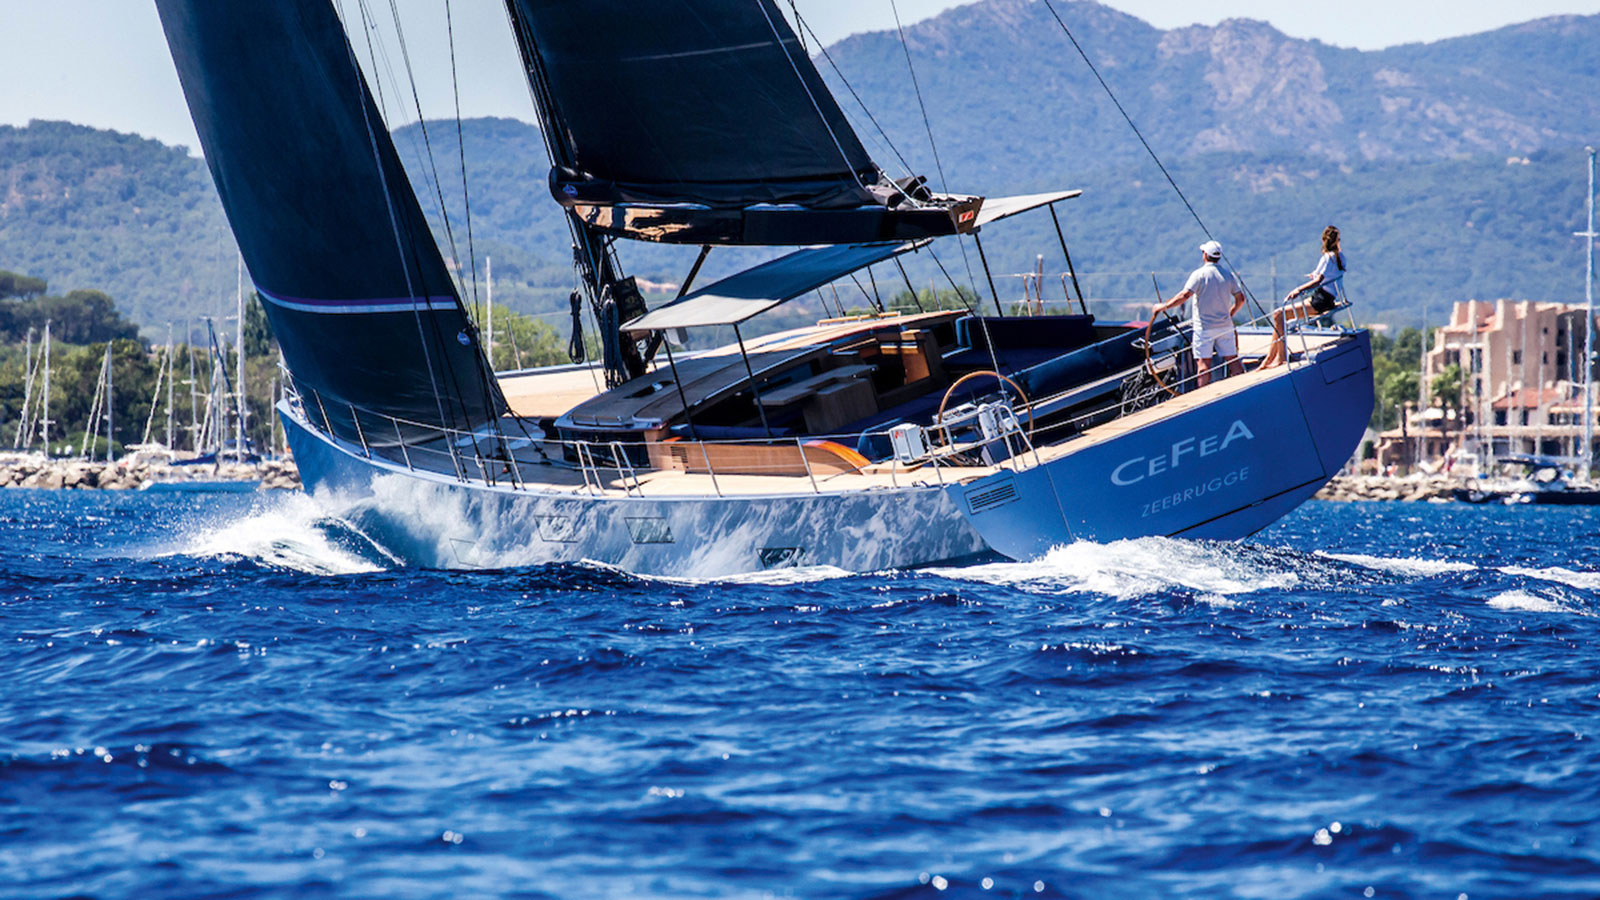 After doing an Atlantic crossing from Tenerife to St Martin on his first 72, Gio went on to build two more Solaris 72s